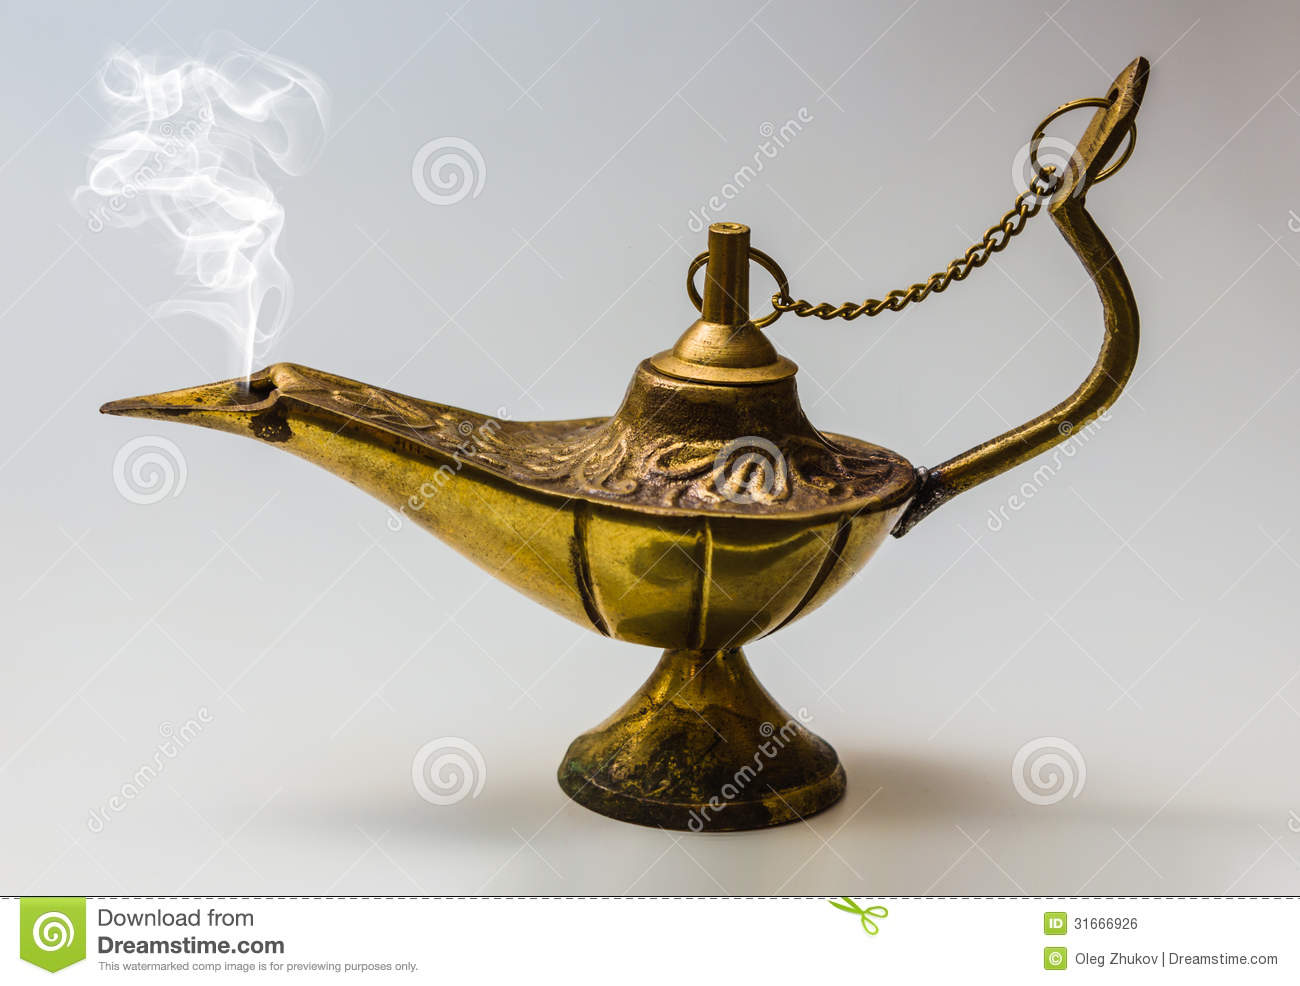 Aladdin Magic Lamp Stock Photos - Royalty Free Pictures for Magic Lamp Aladdin Disney  59dqh